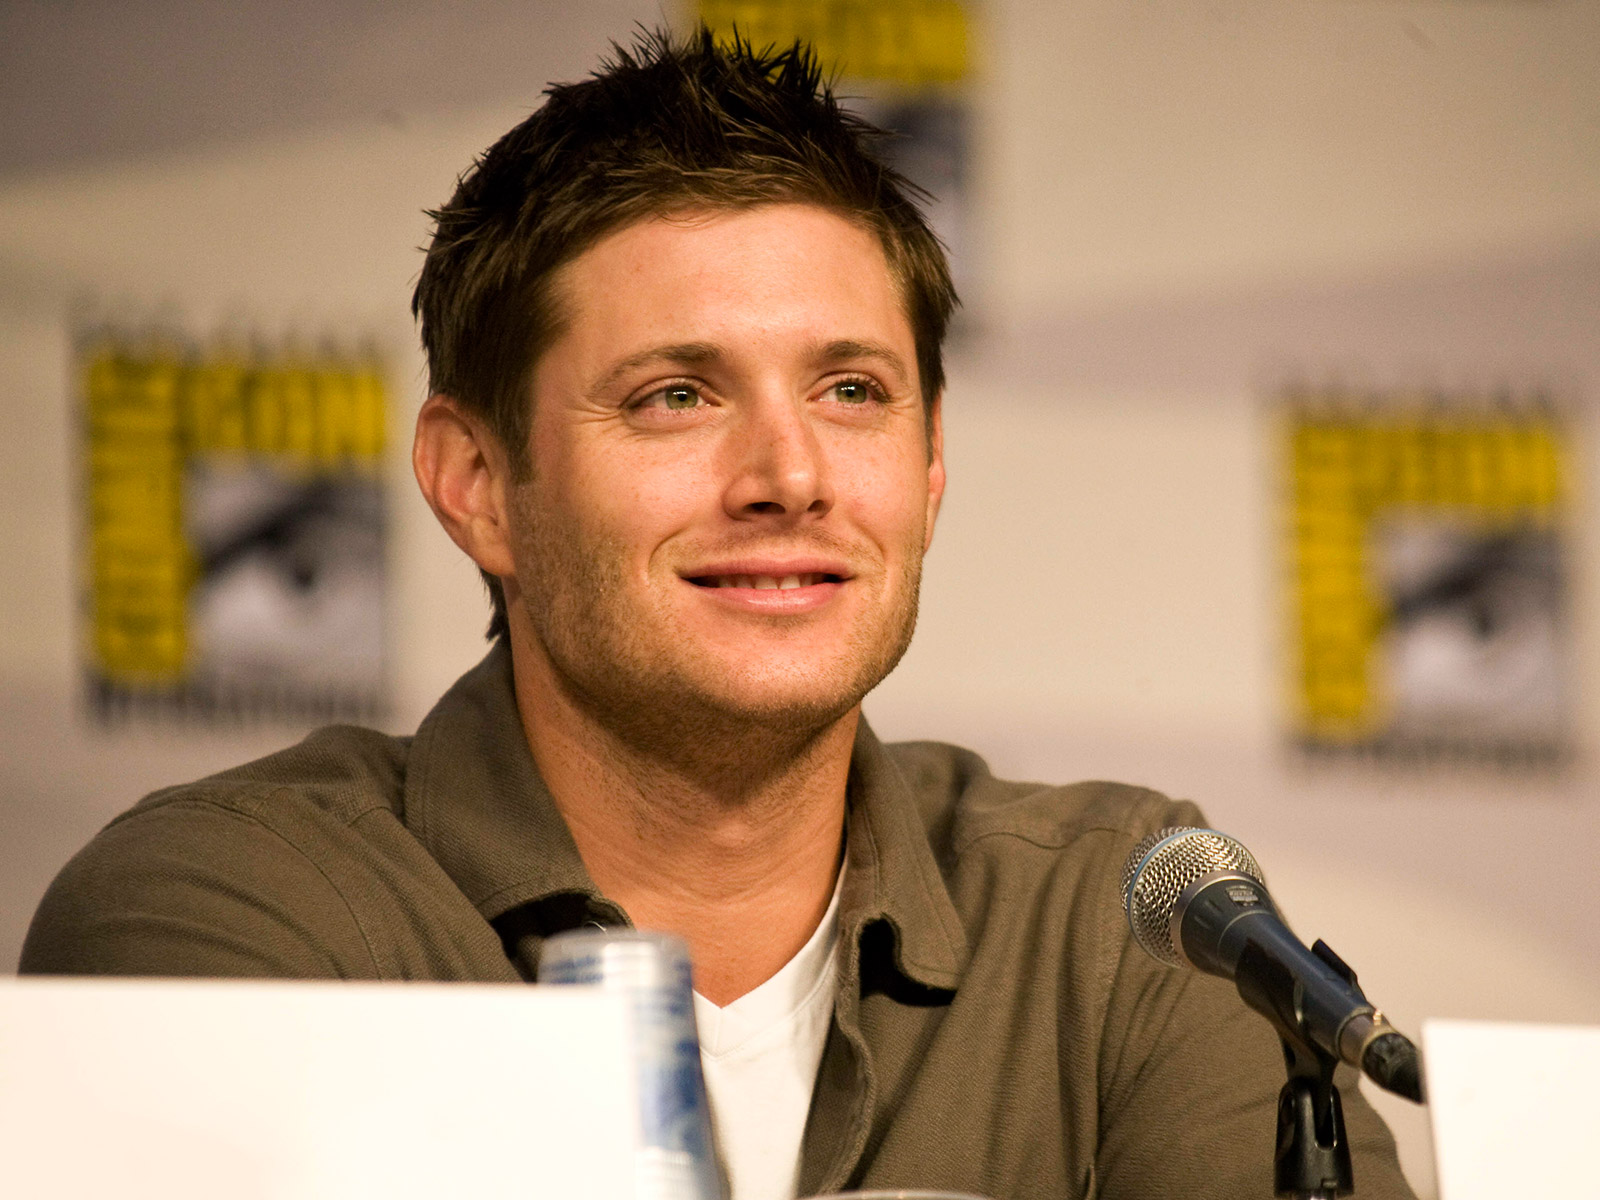 This 'Supernatural' Star's Brewery Name Is Inspired by the Show